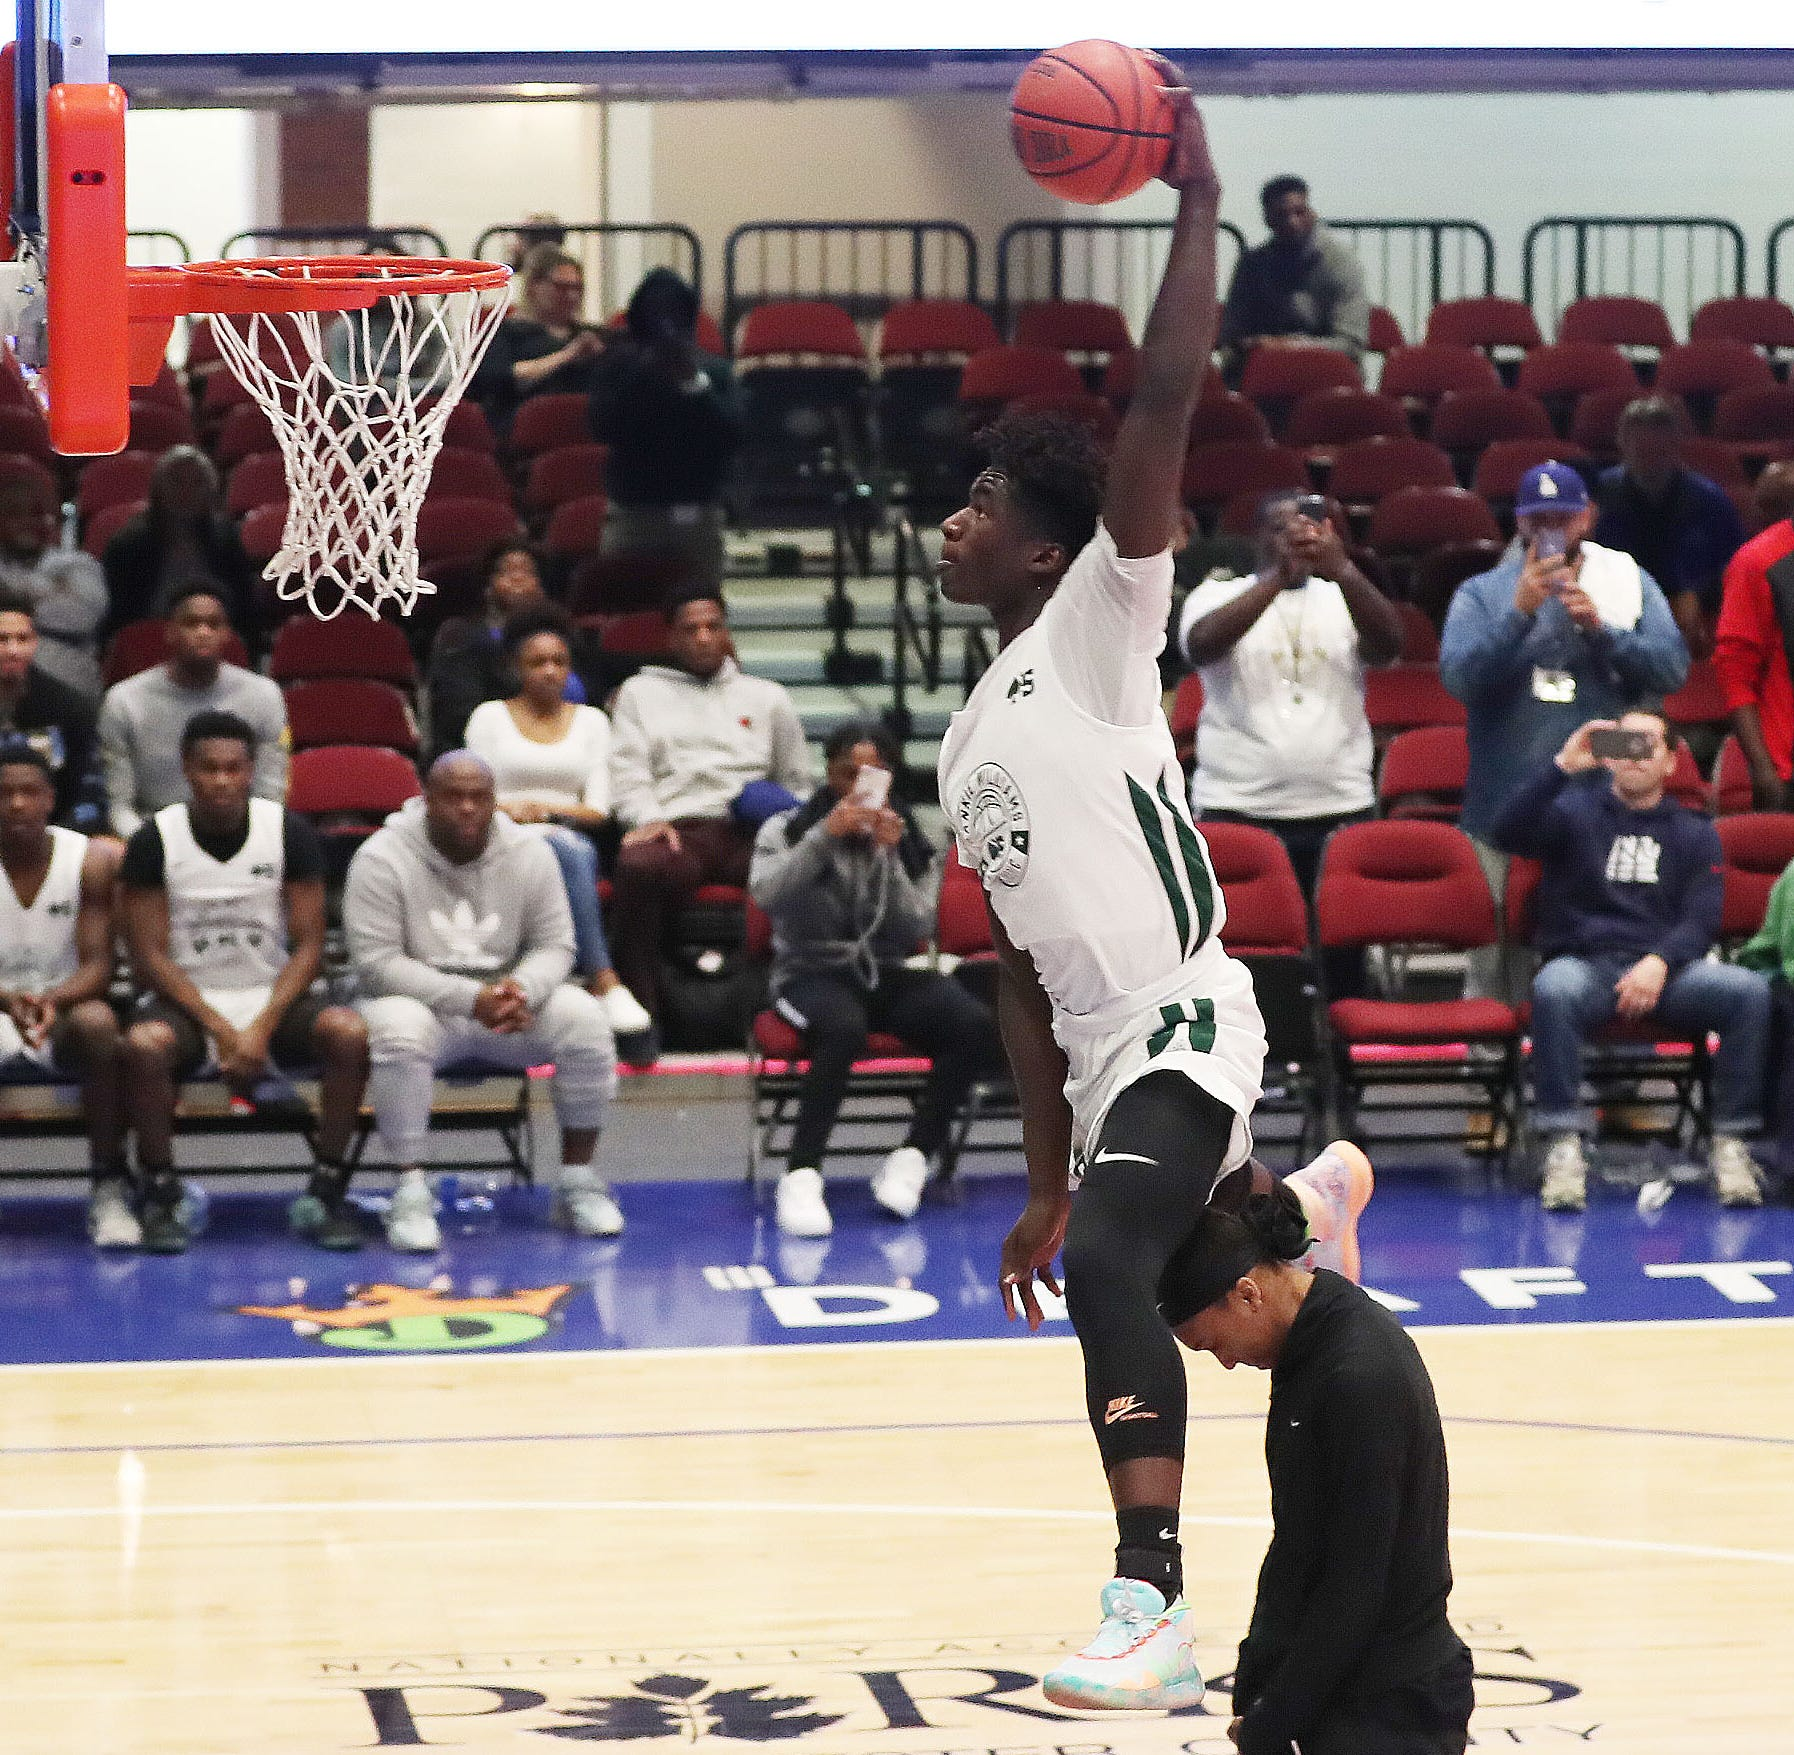 Basketball: Adrian Griffin Jr. and Aubrey Griffin team up at Frankie Williams Classic